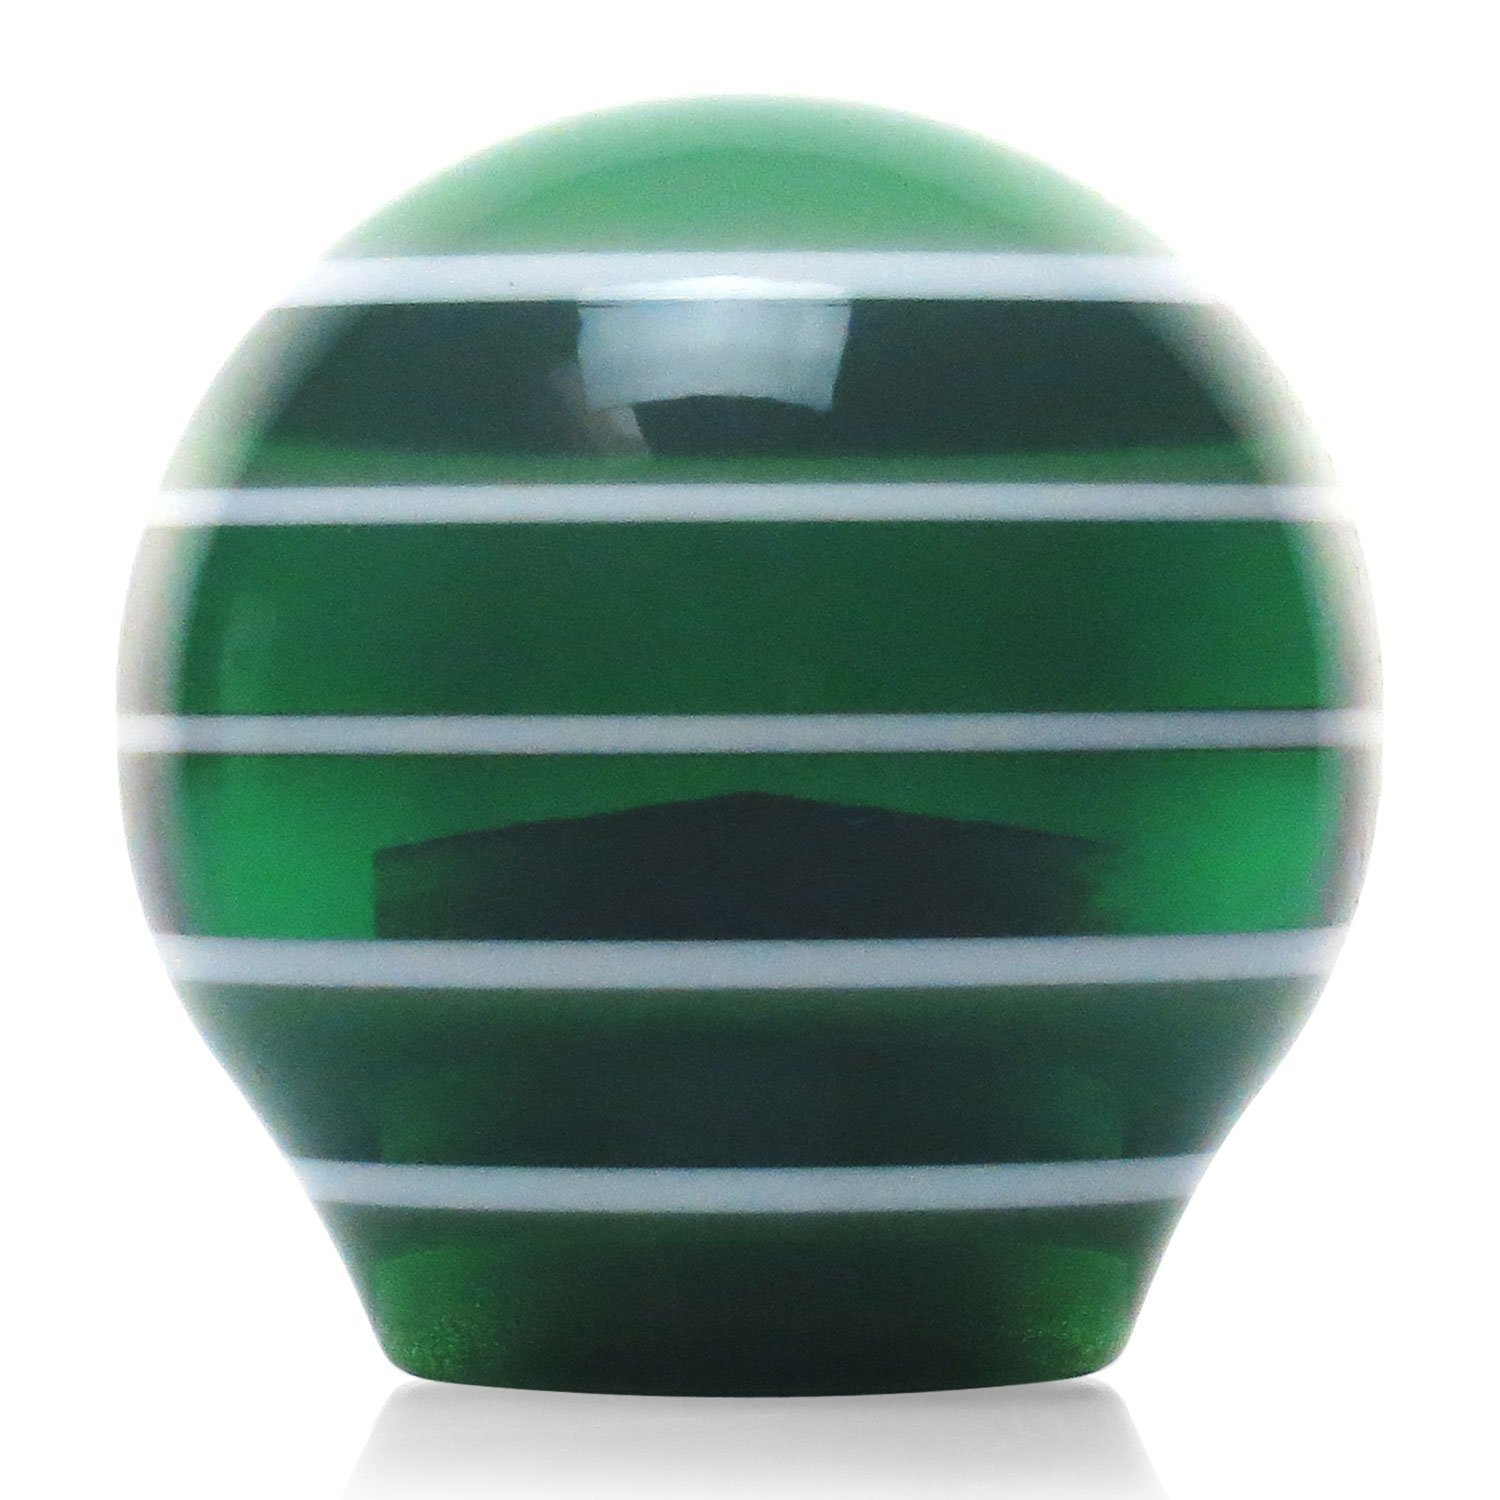 American Shifter 127021 Green Stripe Shift Knob with M16 x 1.5 Insert Black Shift Pattern 29n